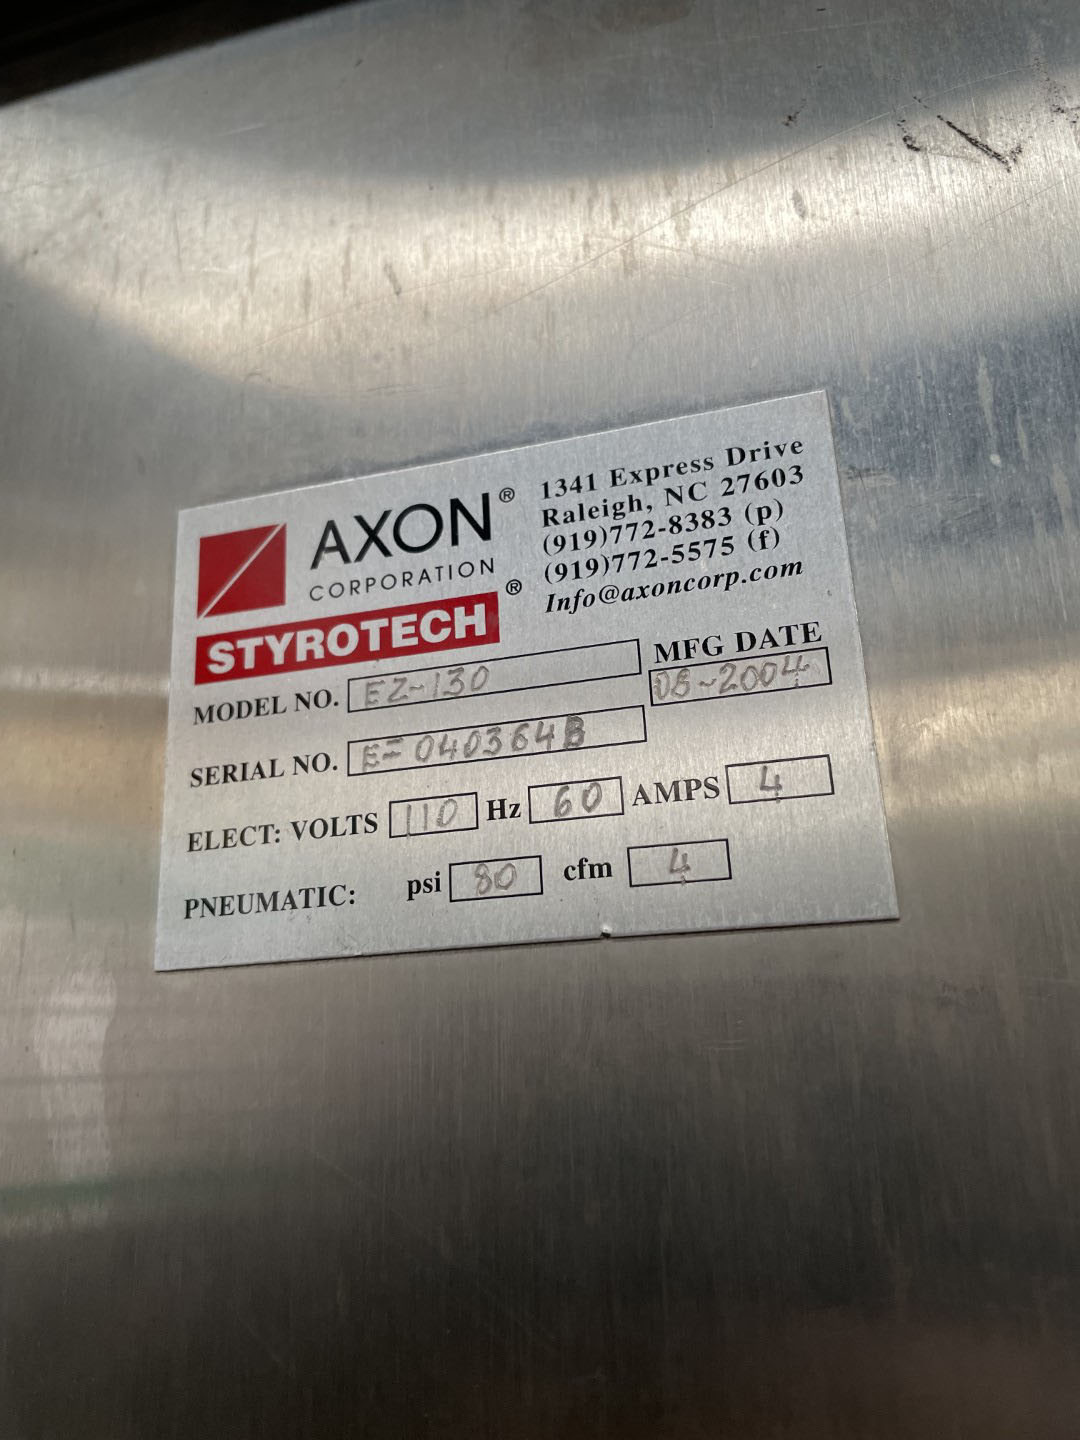 Axon Neck Bander and Tunnel, Model EZ-130